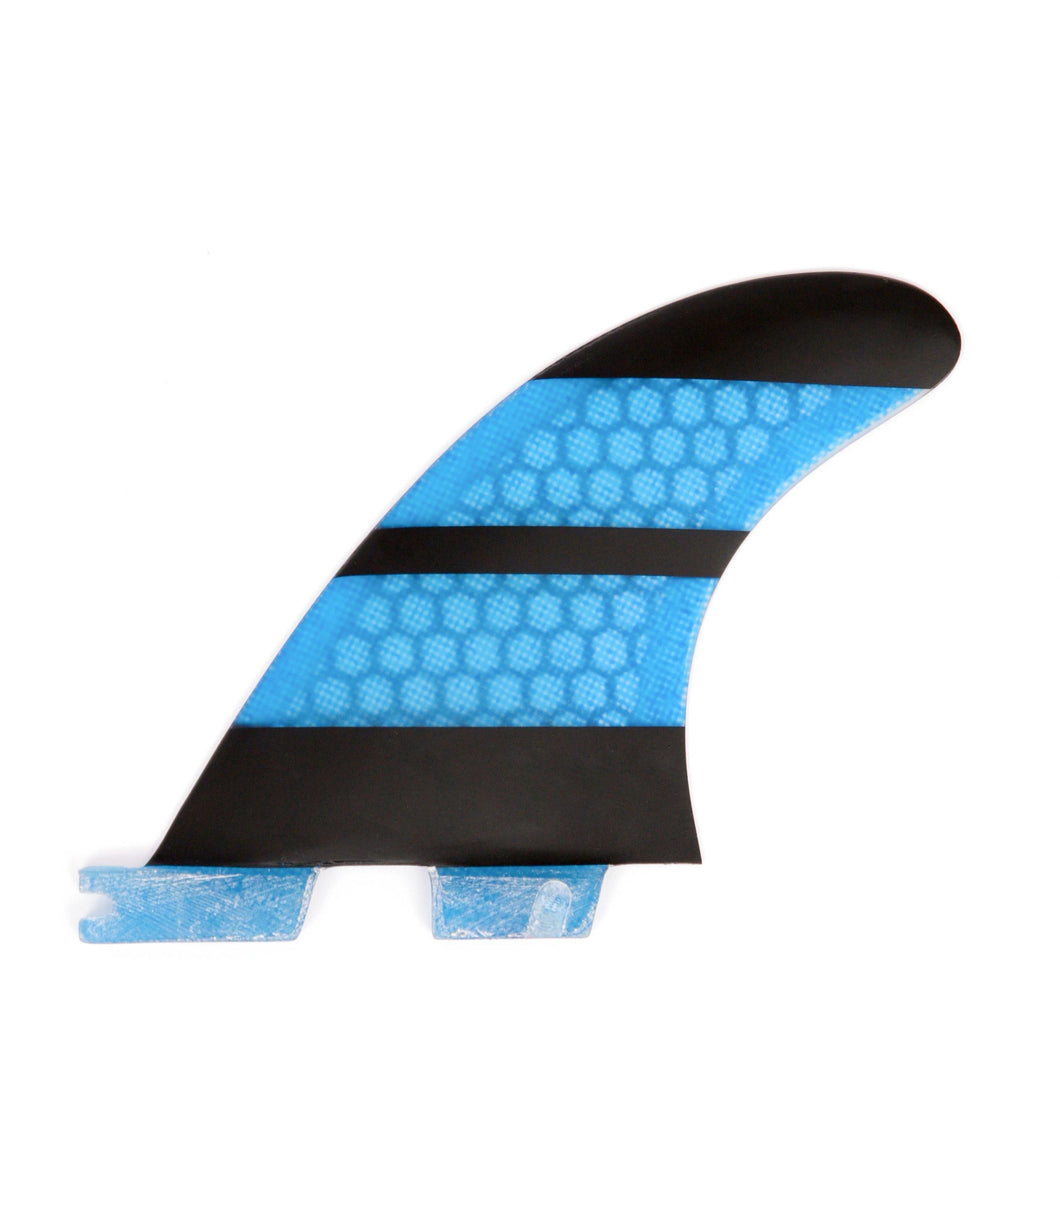 FCS2 Fins Thruster - The Stripe - Carbon Fiber Fins G3 Blue 1